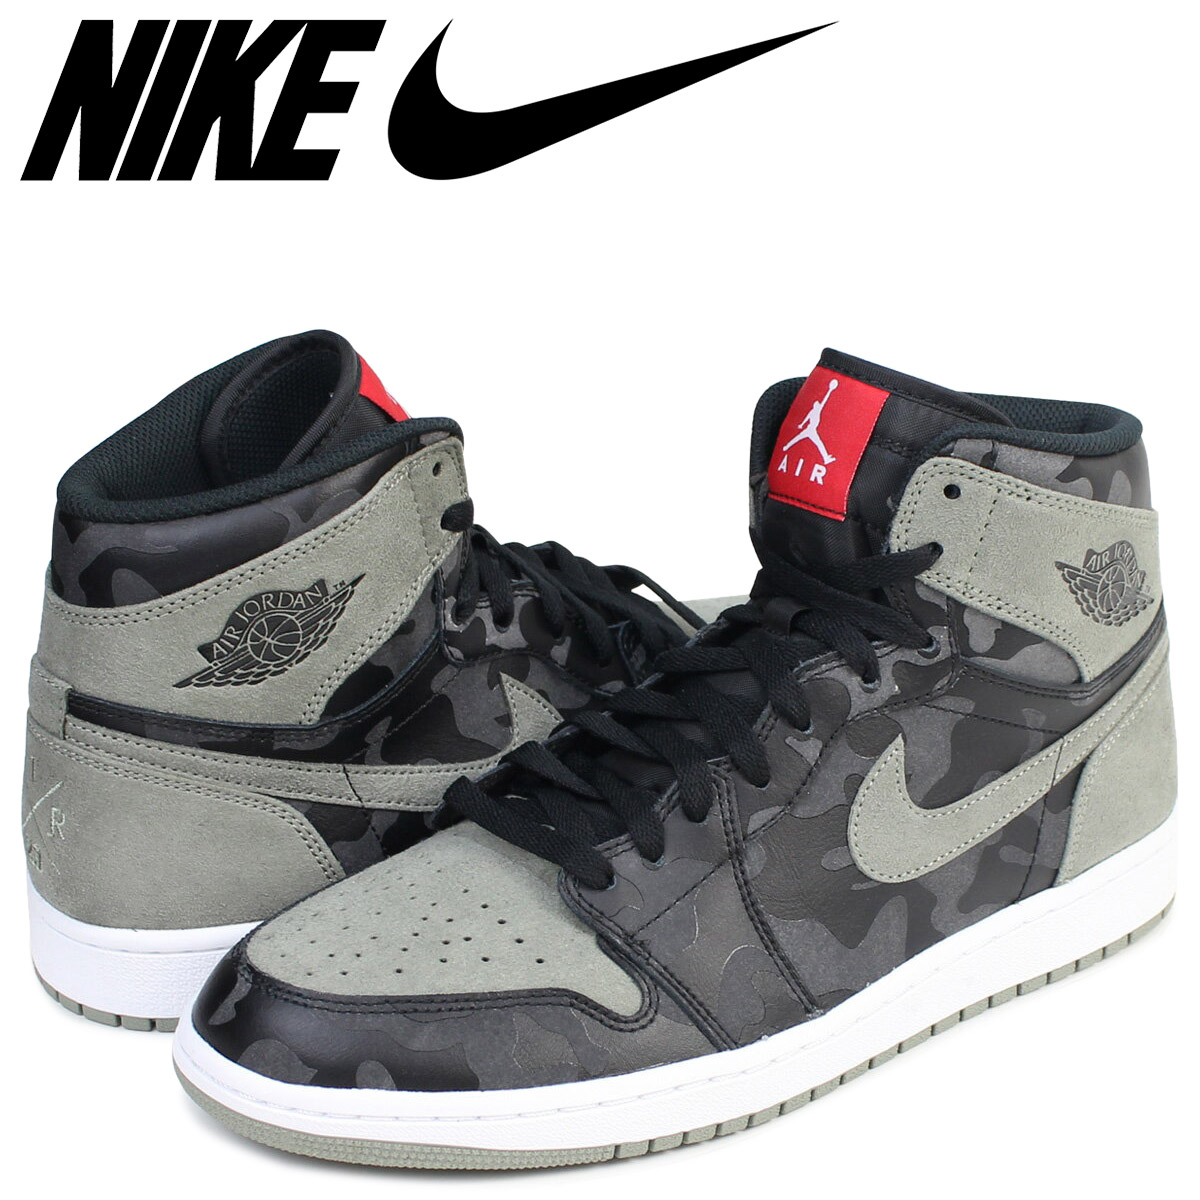 reputable site 93b9e 2003c SOLD OUT Nike NIKE Air Jordan 1 nostalgic high sneakers AIR JORDAN 1  RETRO HIGH PREMIUM AA3993-034 men shoes black